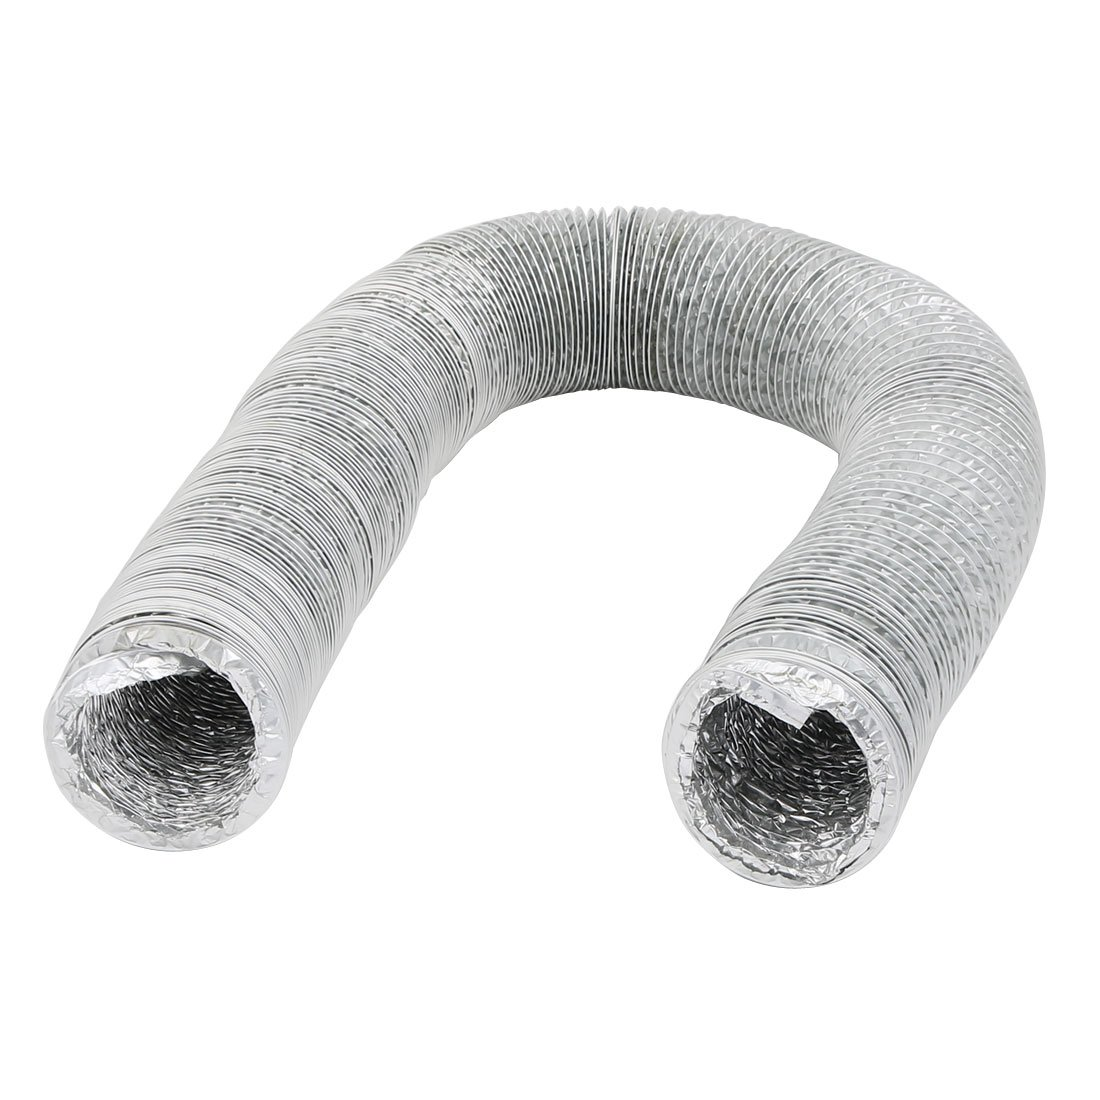 uxcell 2.75 Inch Aluminum Foil Hose Ducting Flexible Pipe Ventilation 4M Long with Clamps